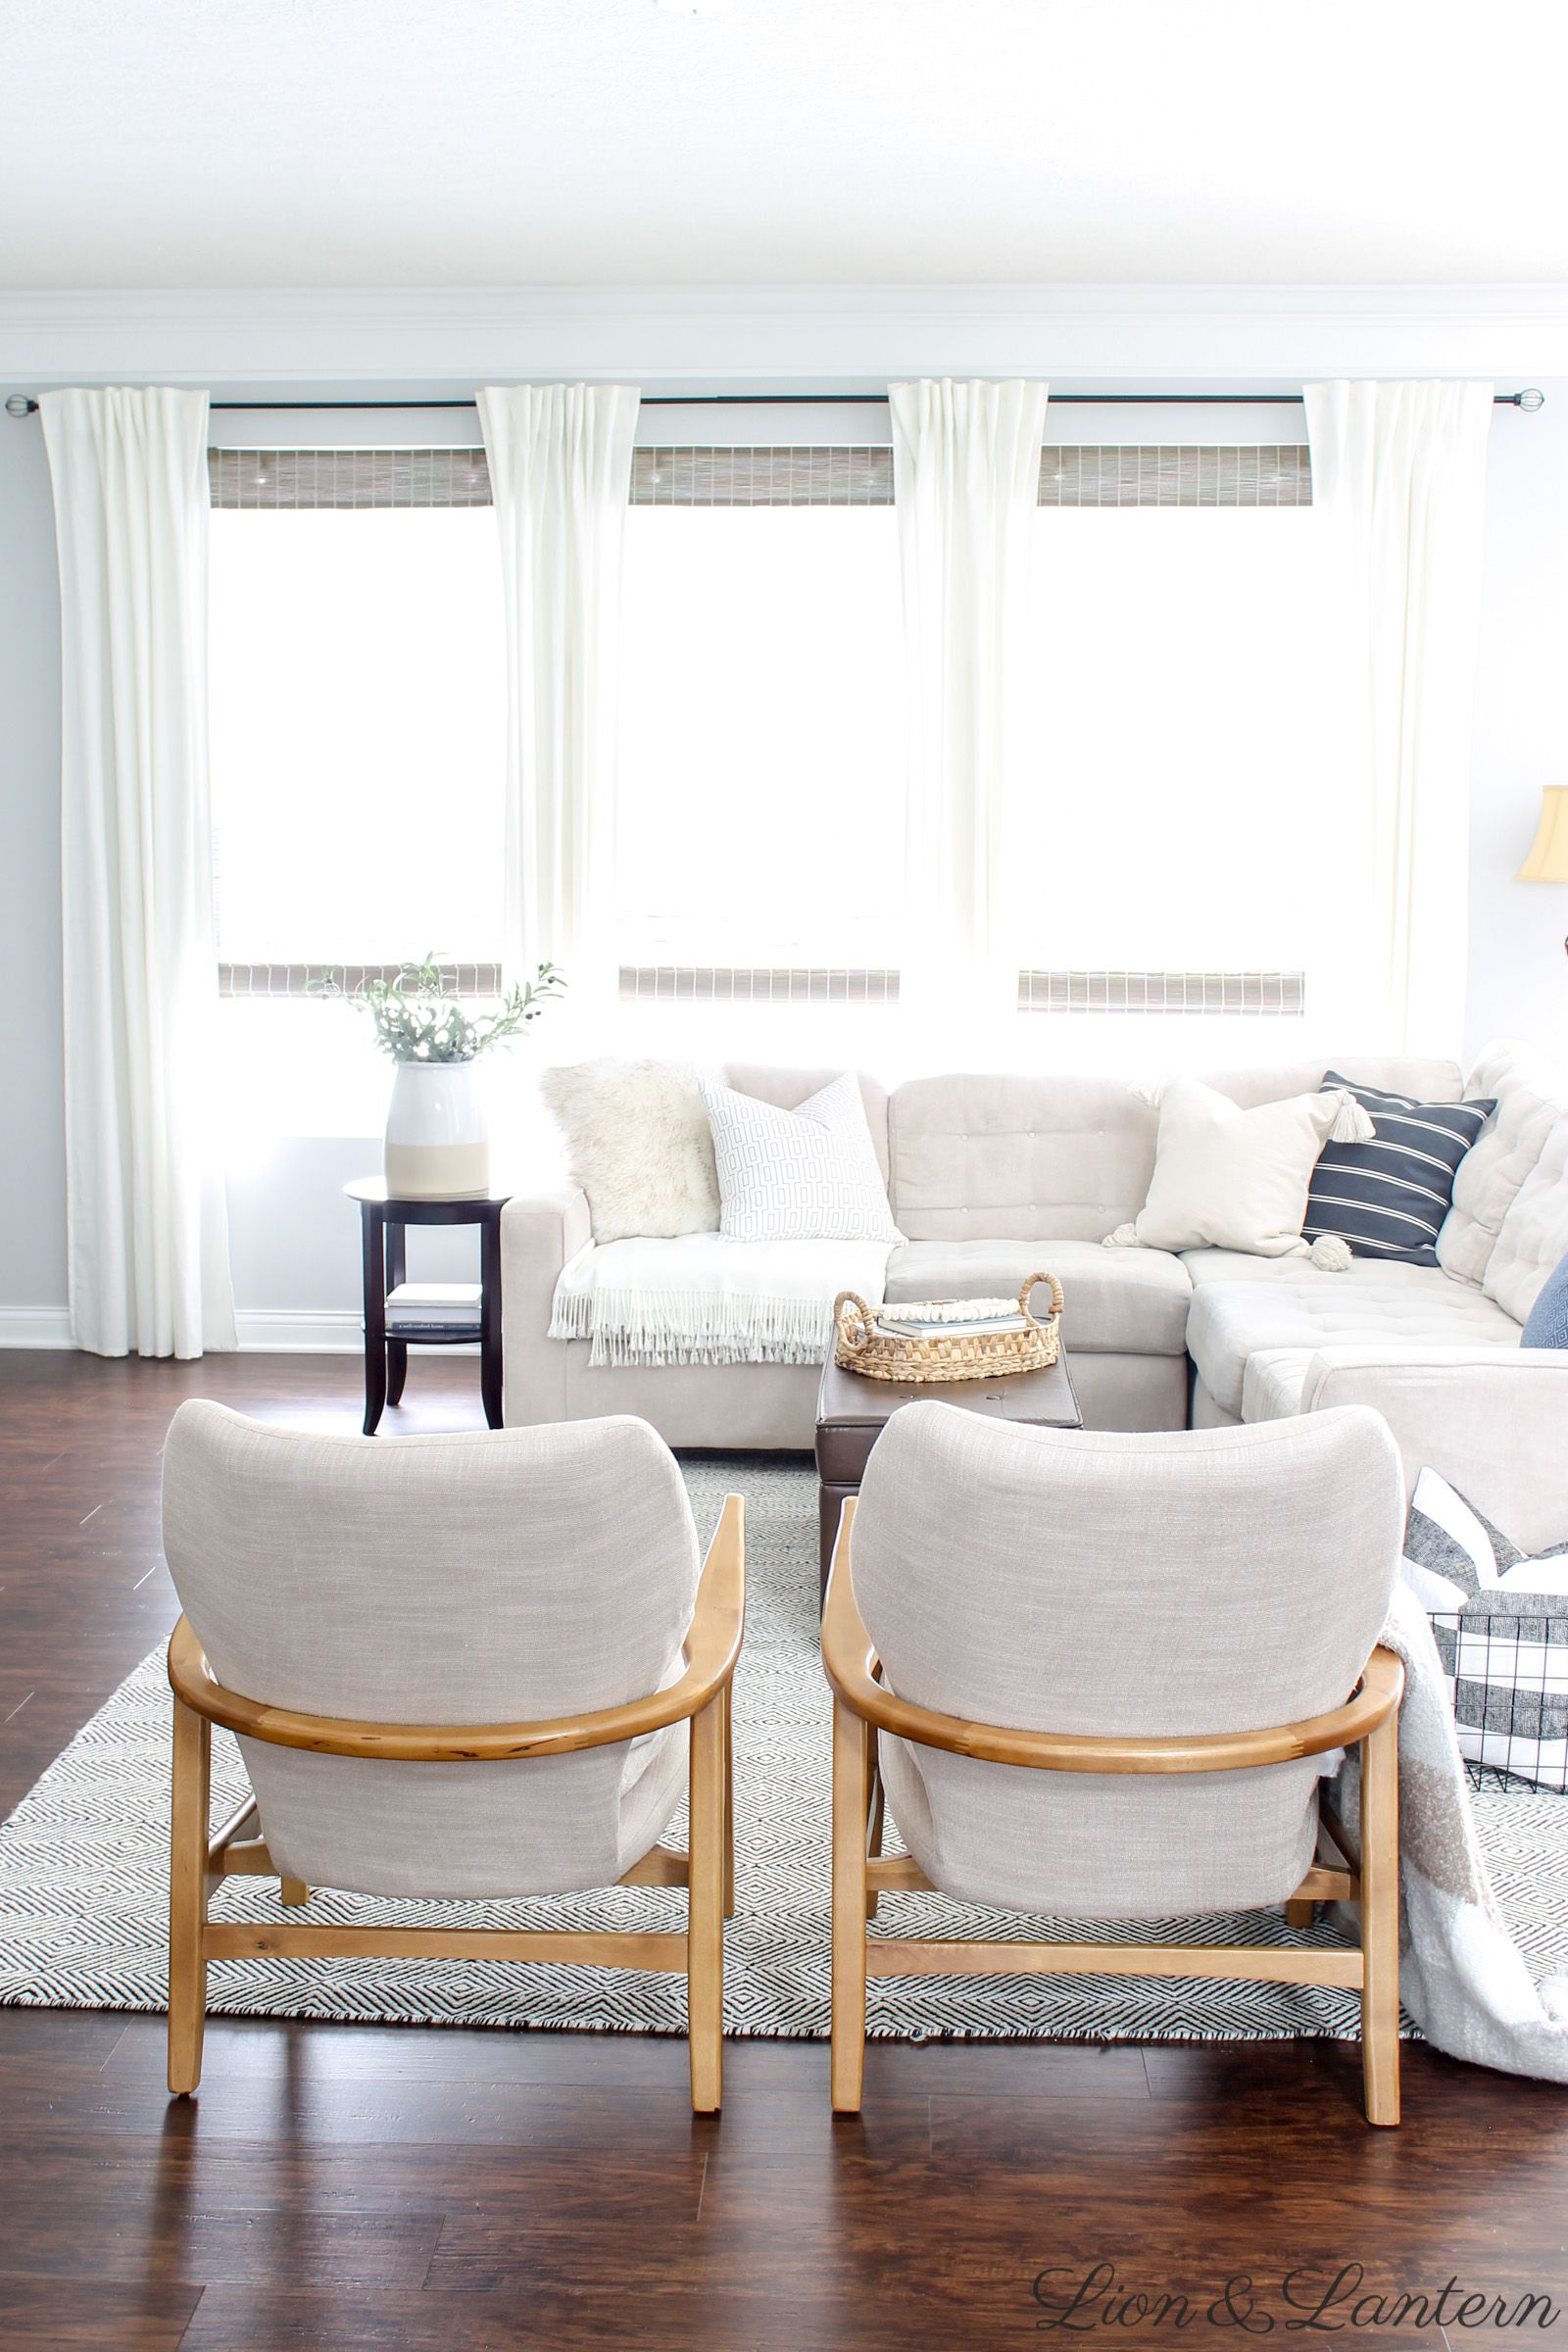 Coastal Modern Affordable Accent Chairs | Accent chairs ...